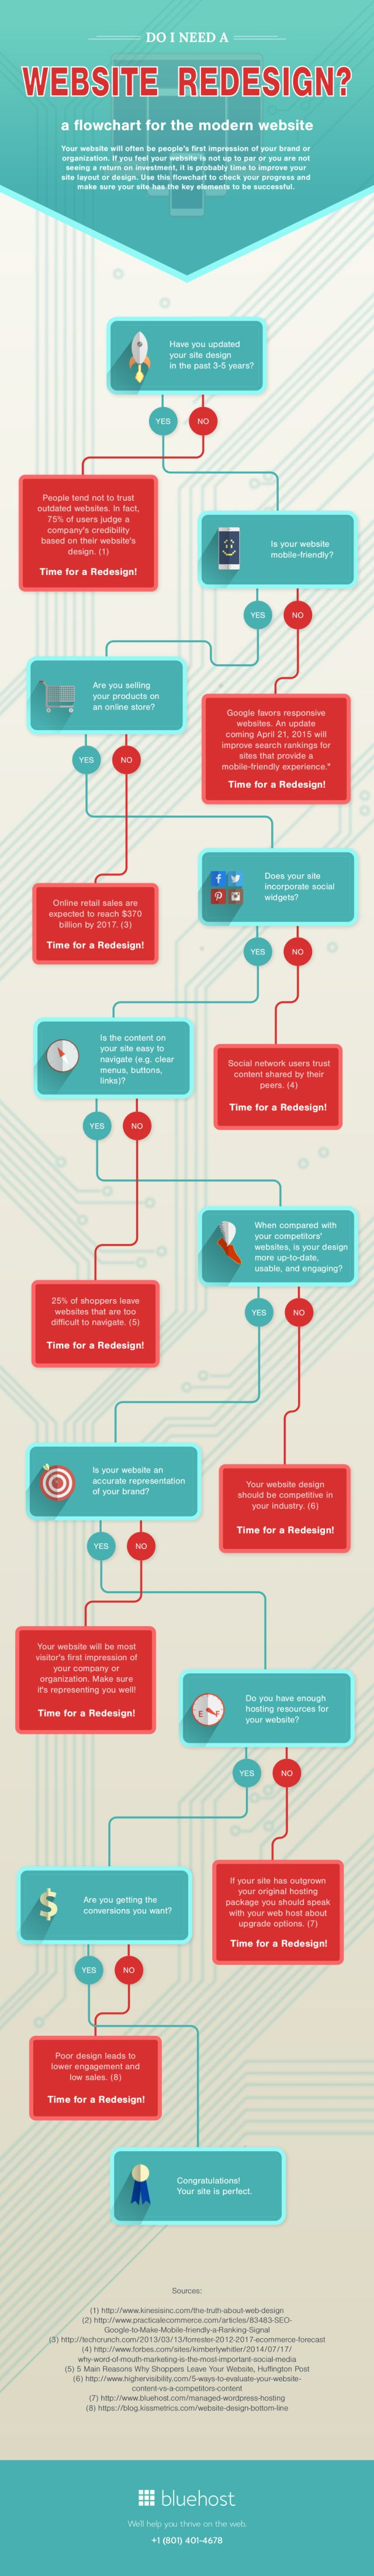 Do You Need a Website Redesign This Flowchart Will Tell You: #Infographic #WebDesign